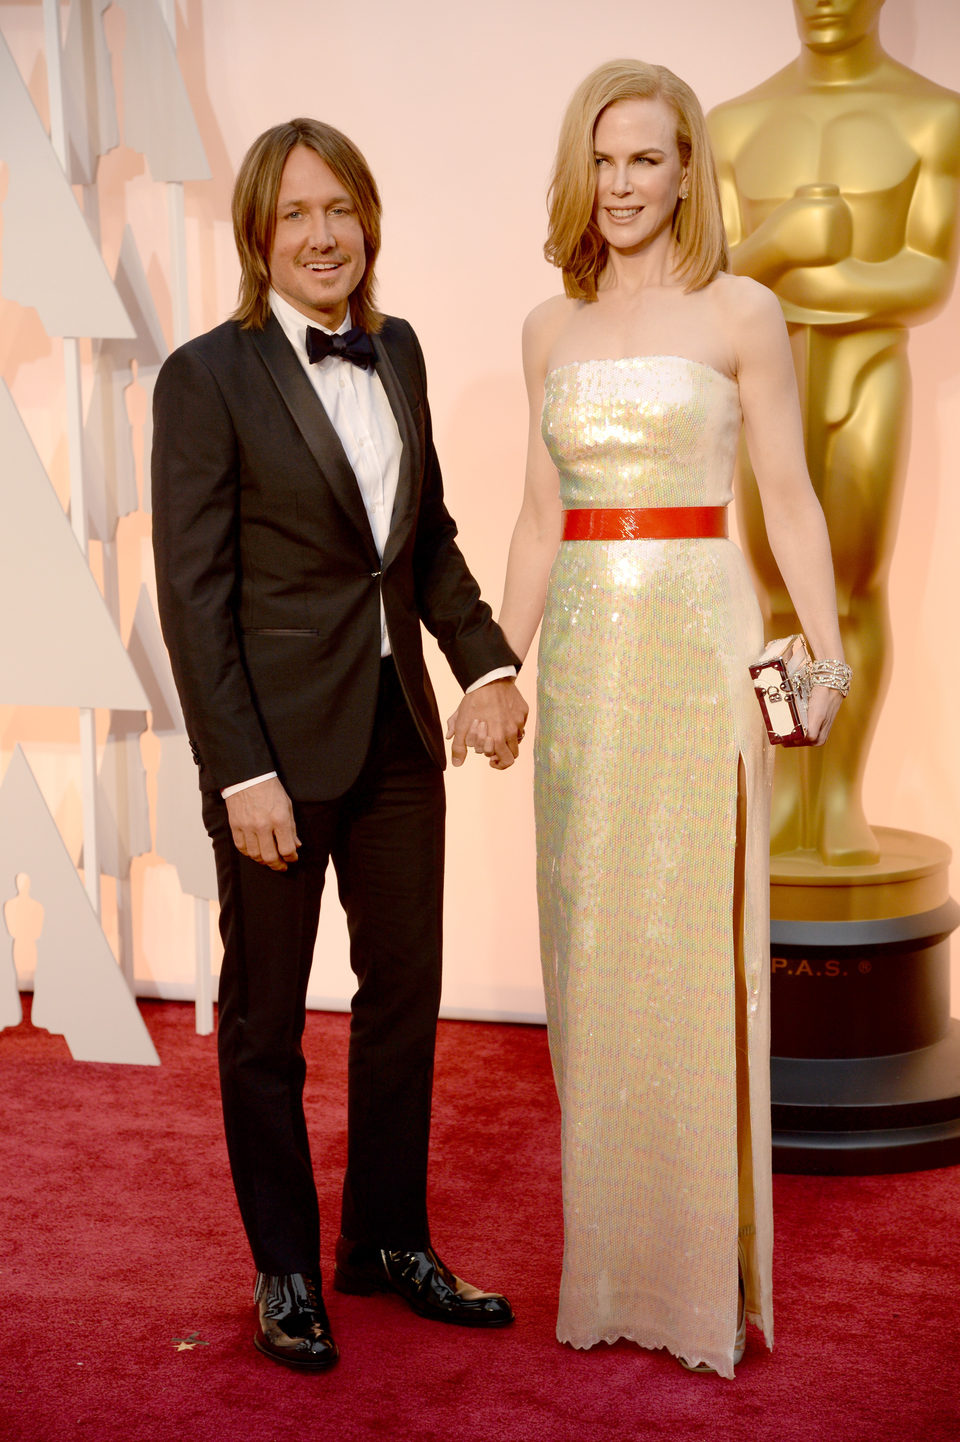 Nicole Kidman next to his husband Keith Urban at the Oscars Awards 2015 red carpet